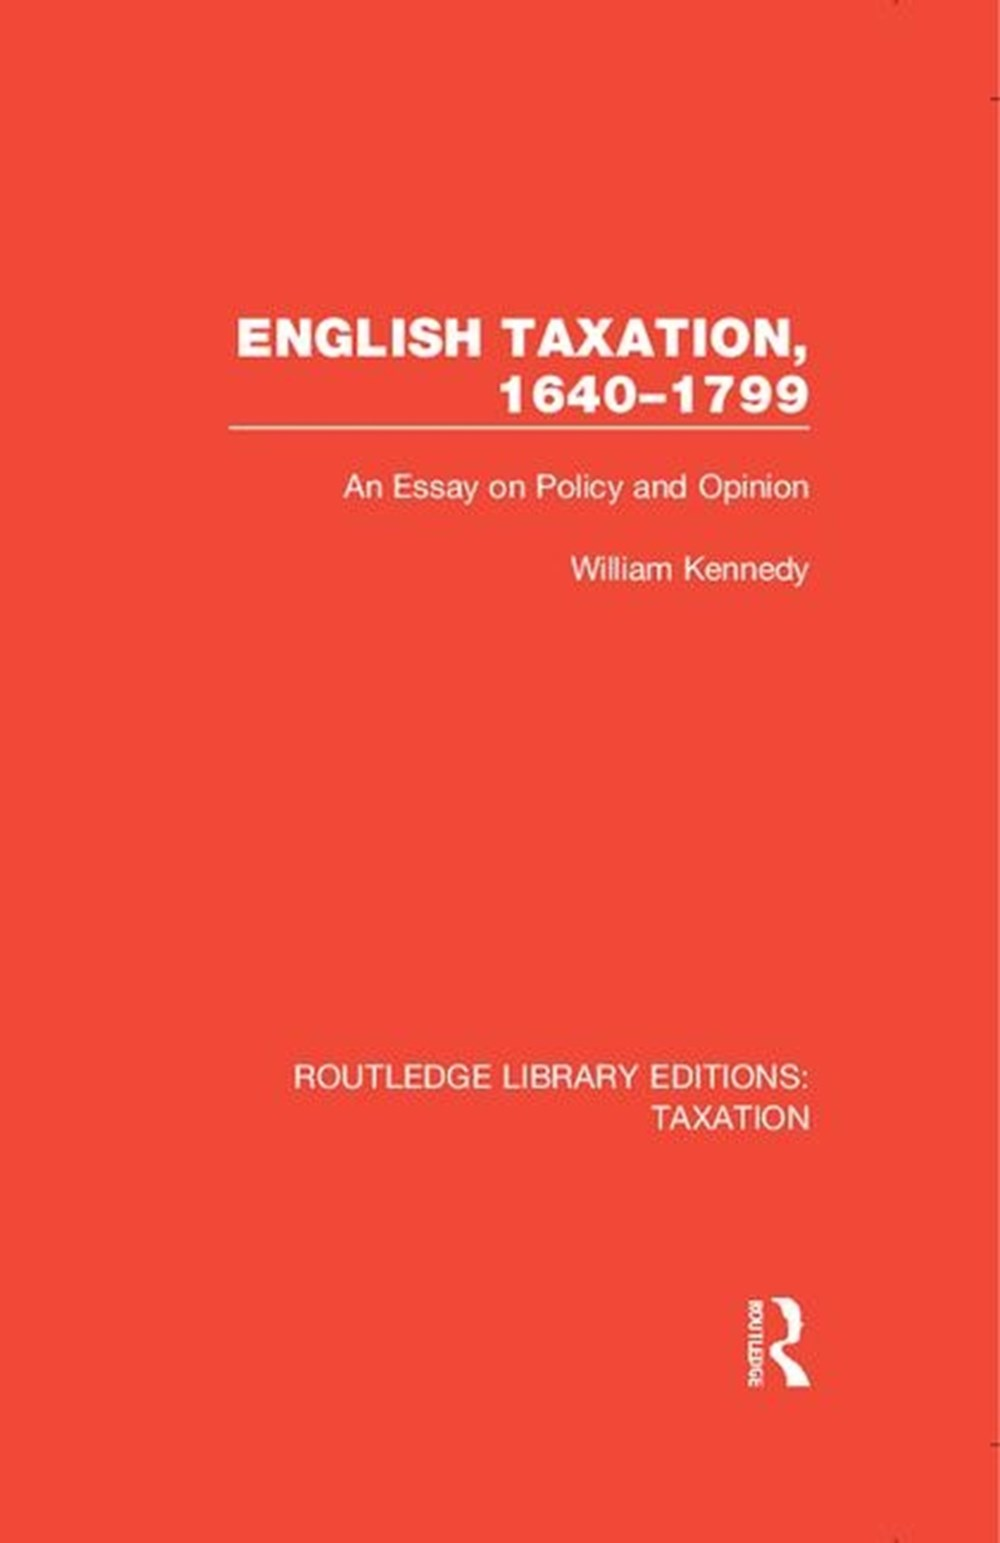 English Taxation, 1640-1799 An Essay on Policy and Opinion